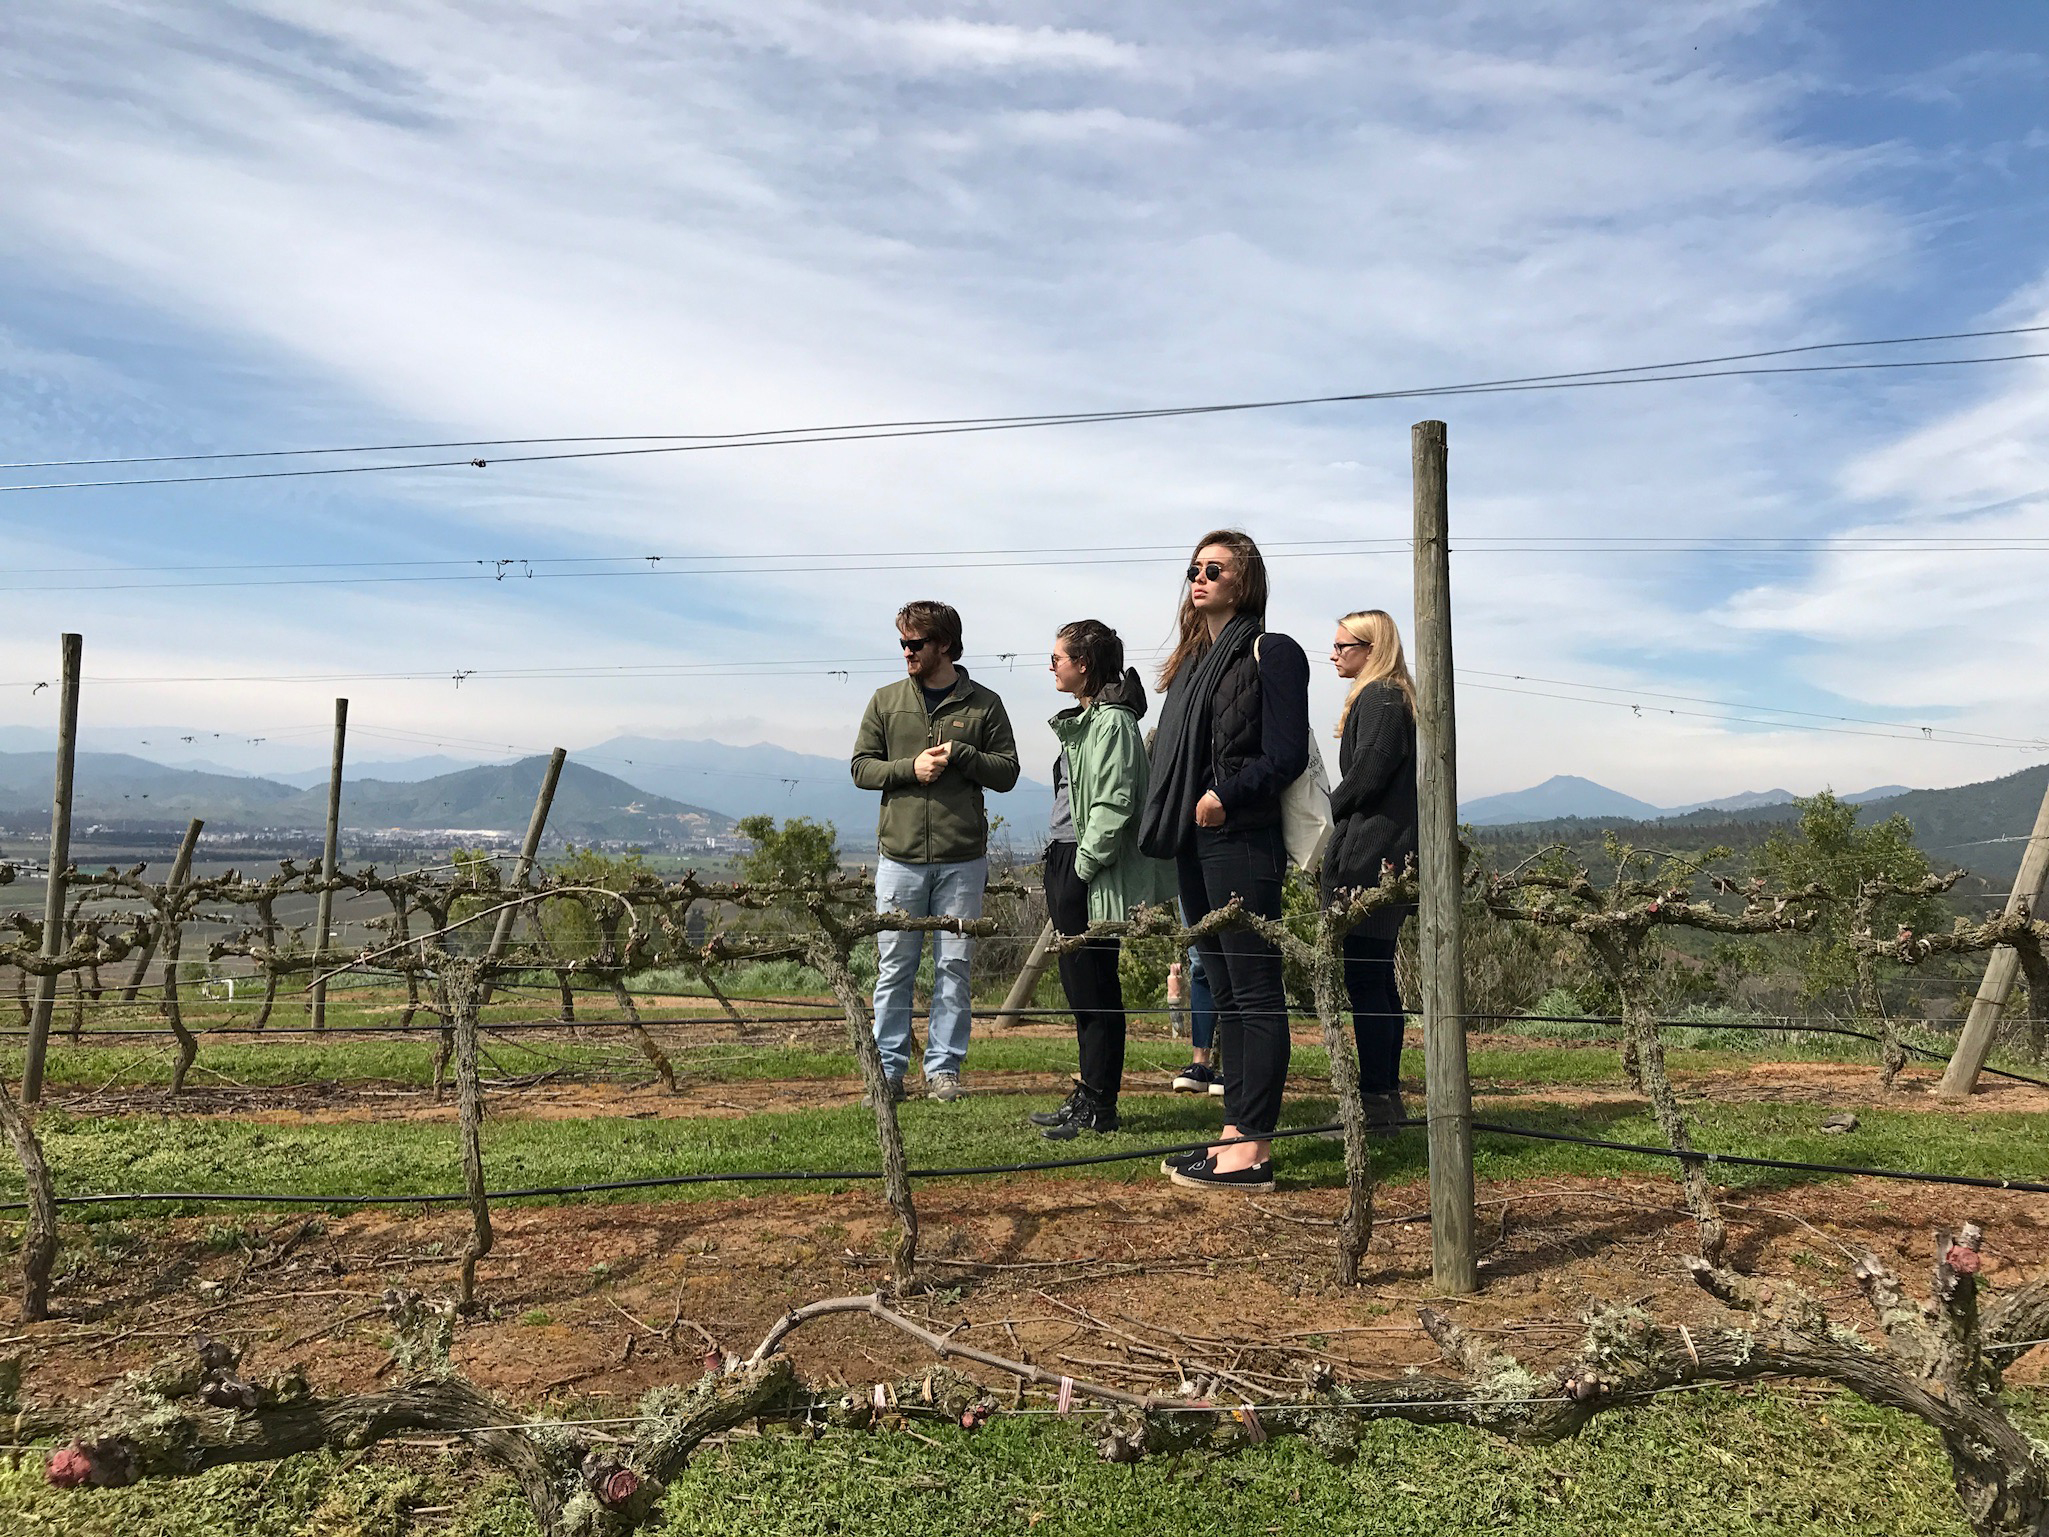 Winemaker Amael Orrego giving us tour of the vines on our first day in Chile, in early September.